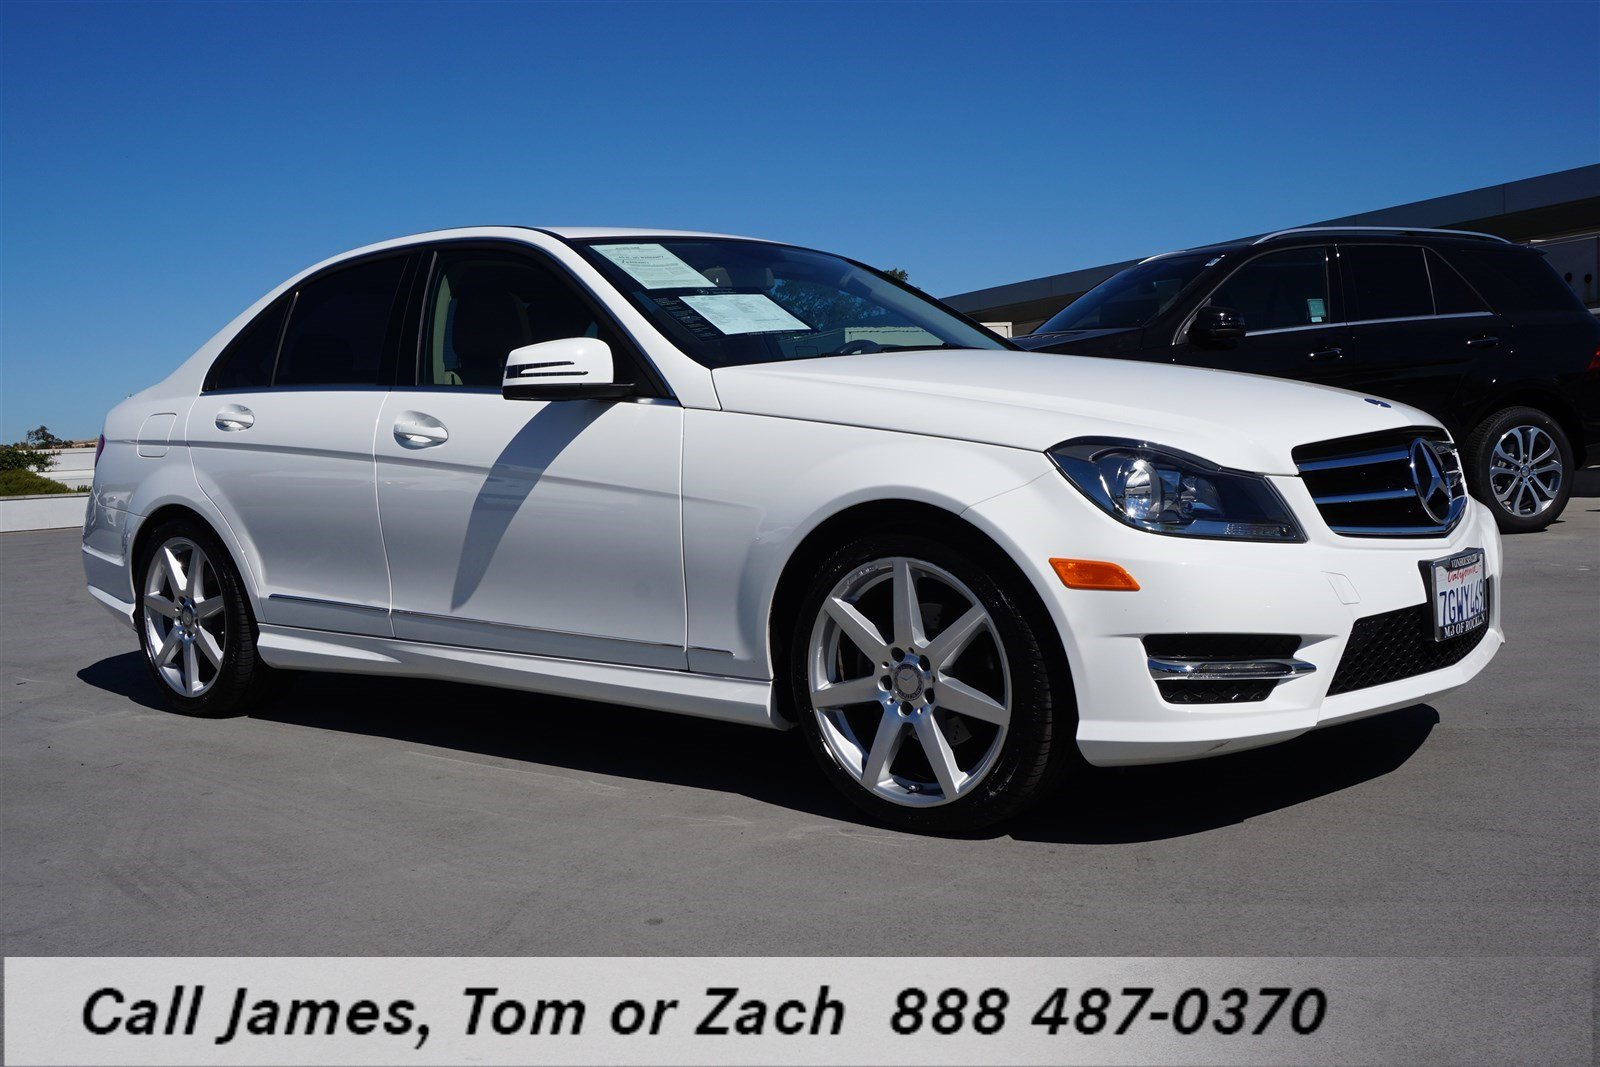 Pre owned 2014 mercedes benz c class c250 4dr car in for Mercedes benz rocklin service